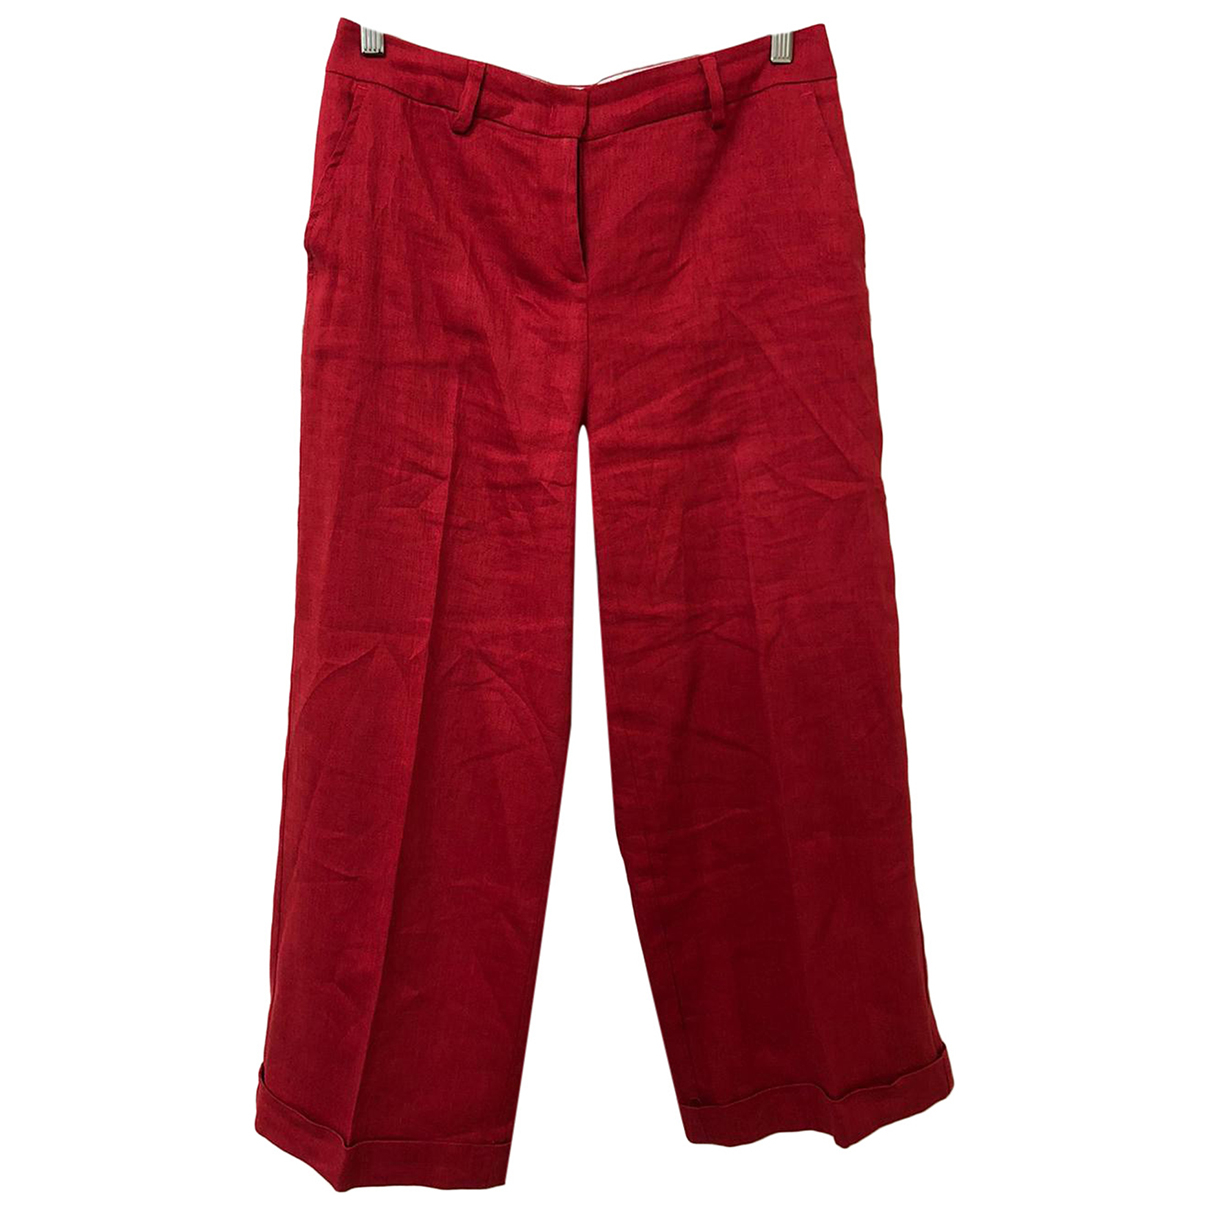 Intrend N Red Linen Trousers for Women 4 US